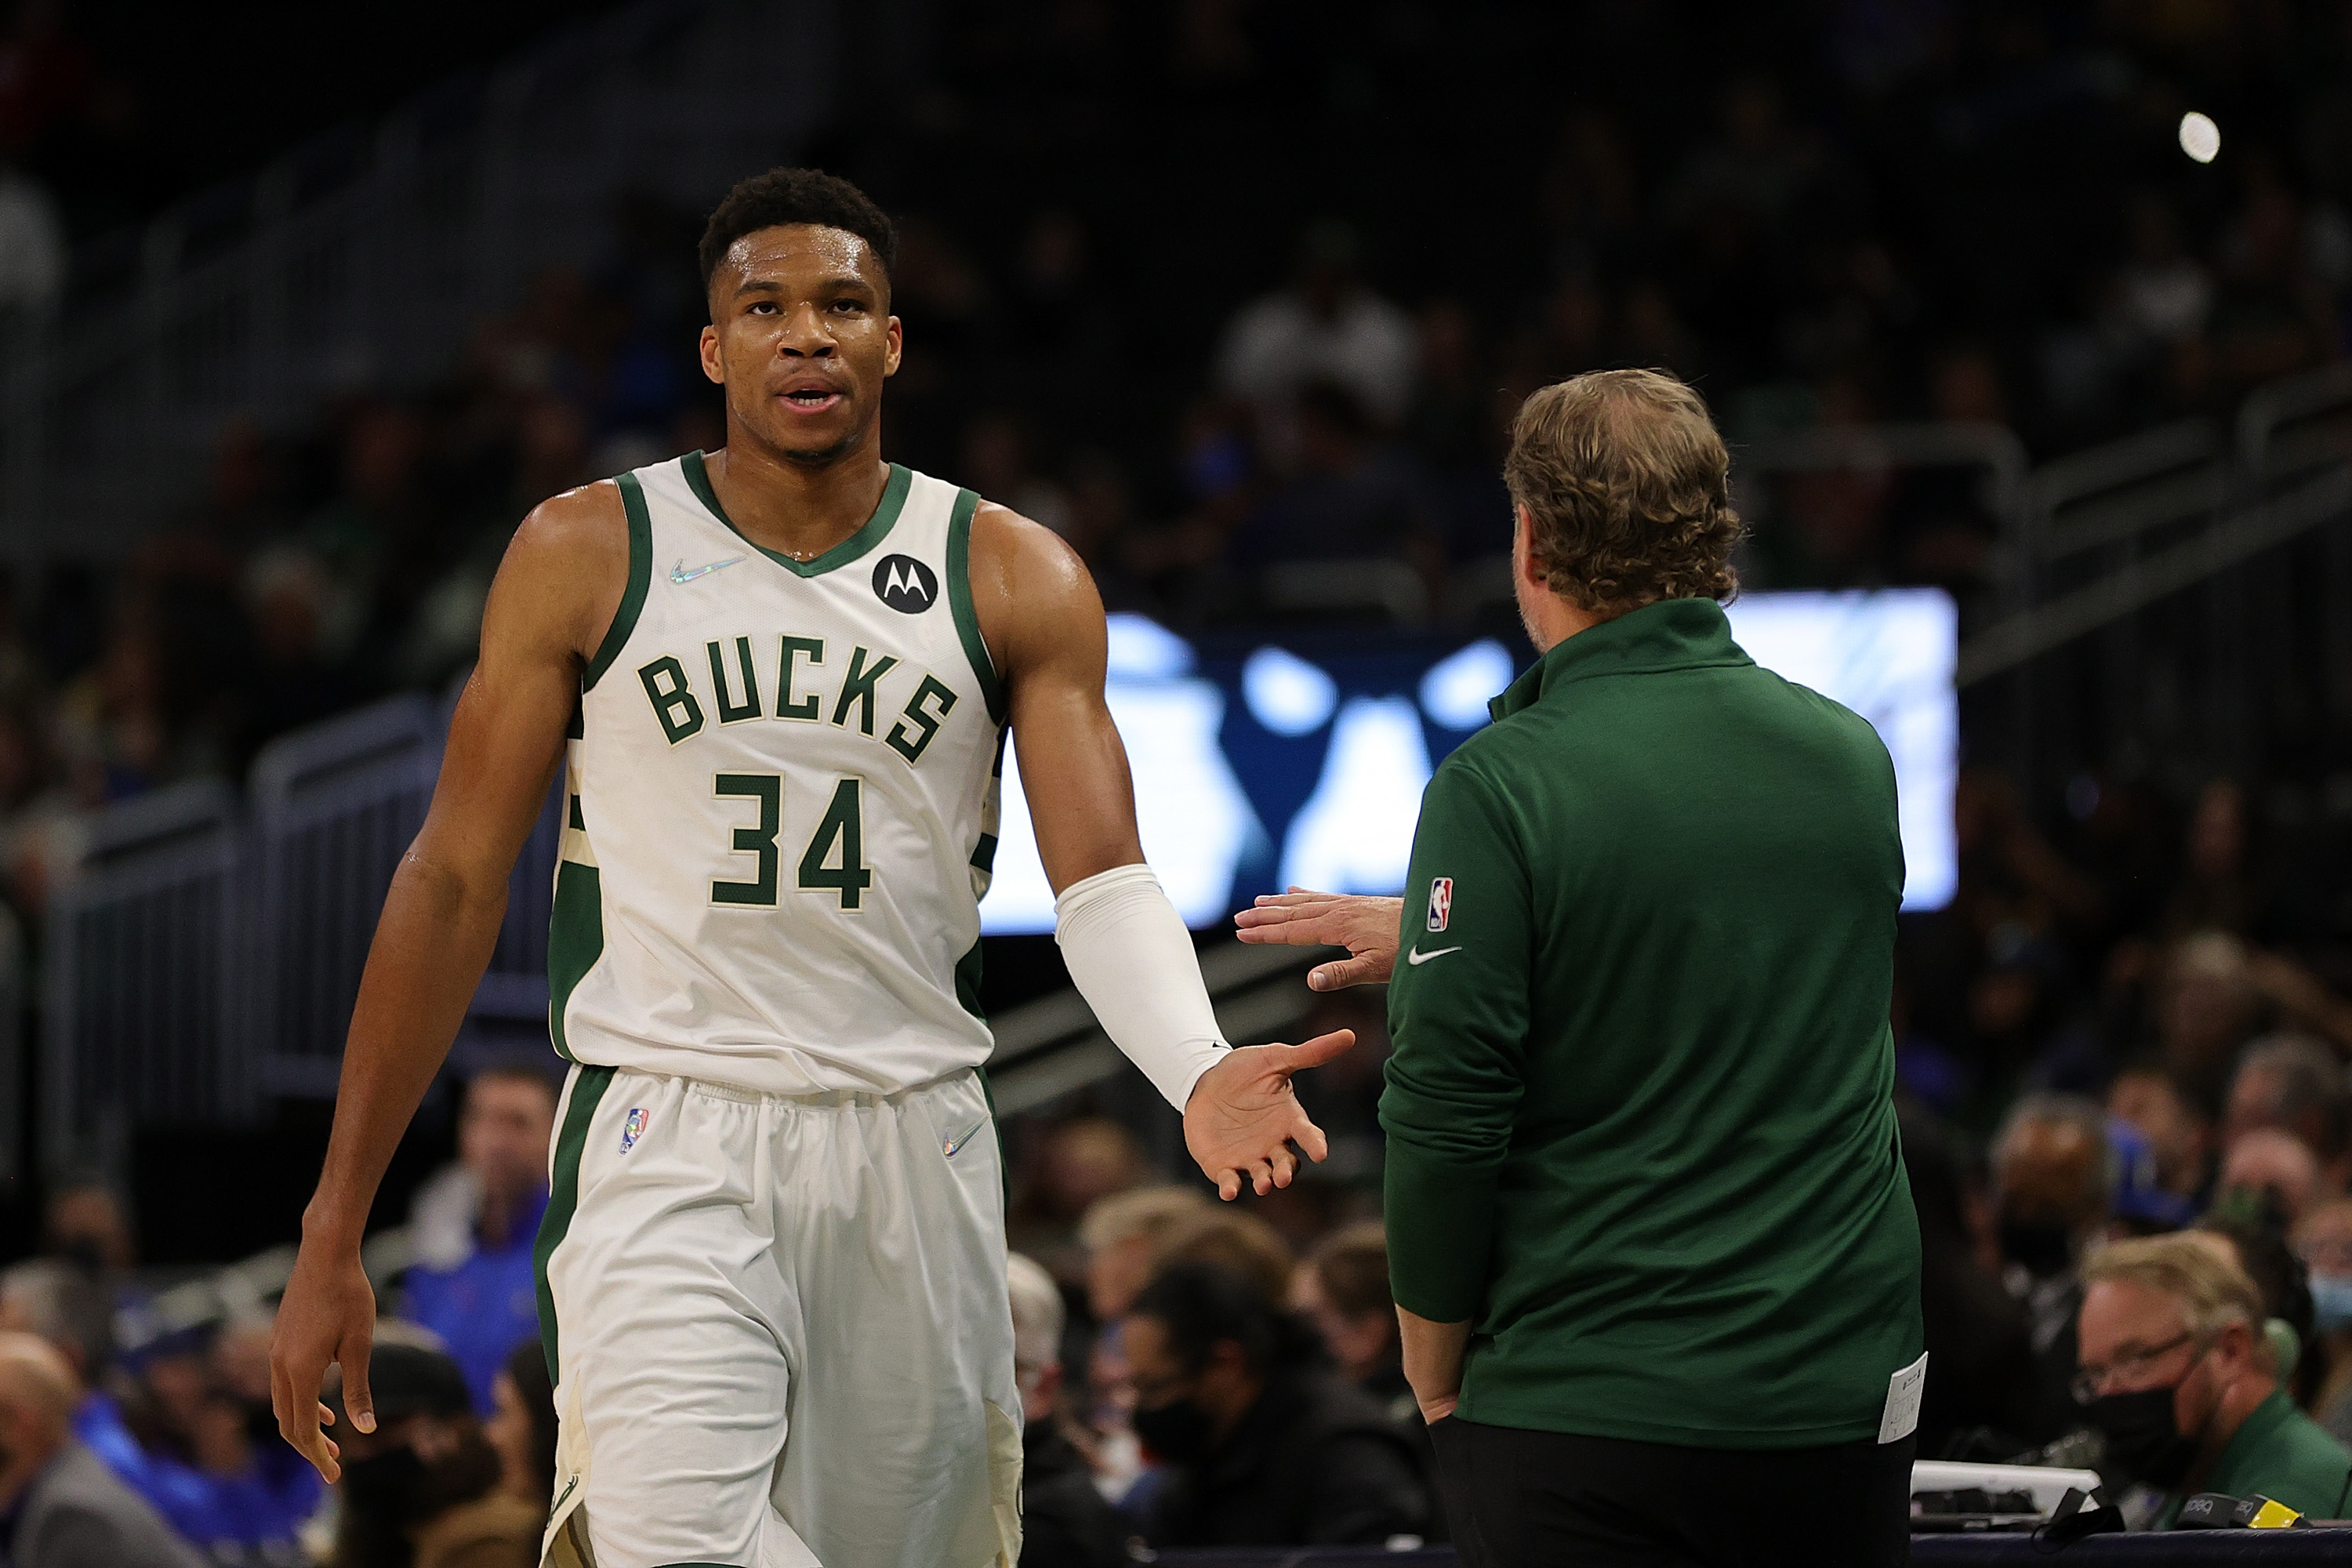 Giannis Antetokounmpo #34 of the Milwaukee Bucks walks to the bench during the first half of a game against the Dallas Mavericks at Fiserv Forum on October 15, 2021 in Milwaukee, Wisconsin.